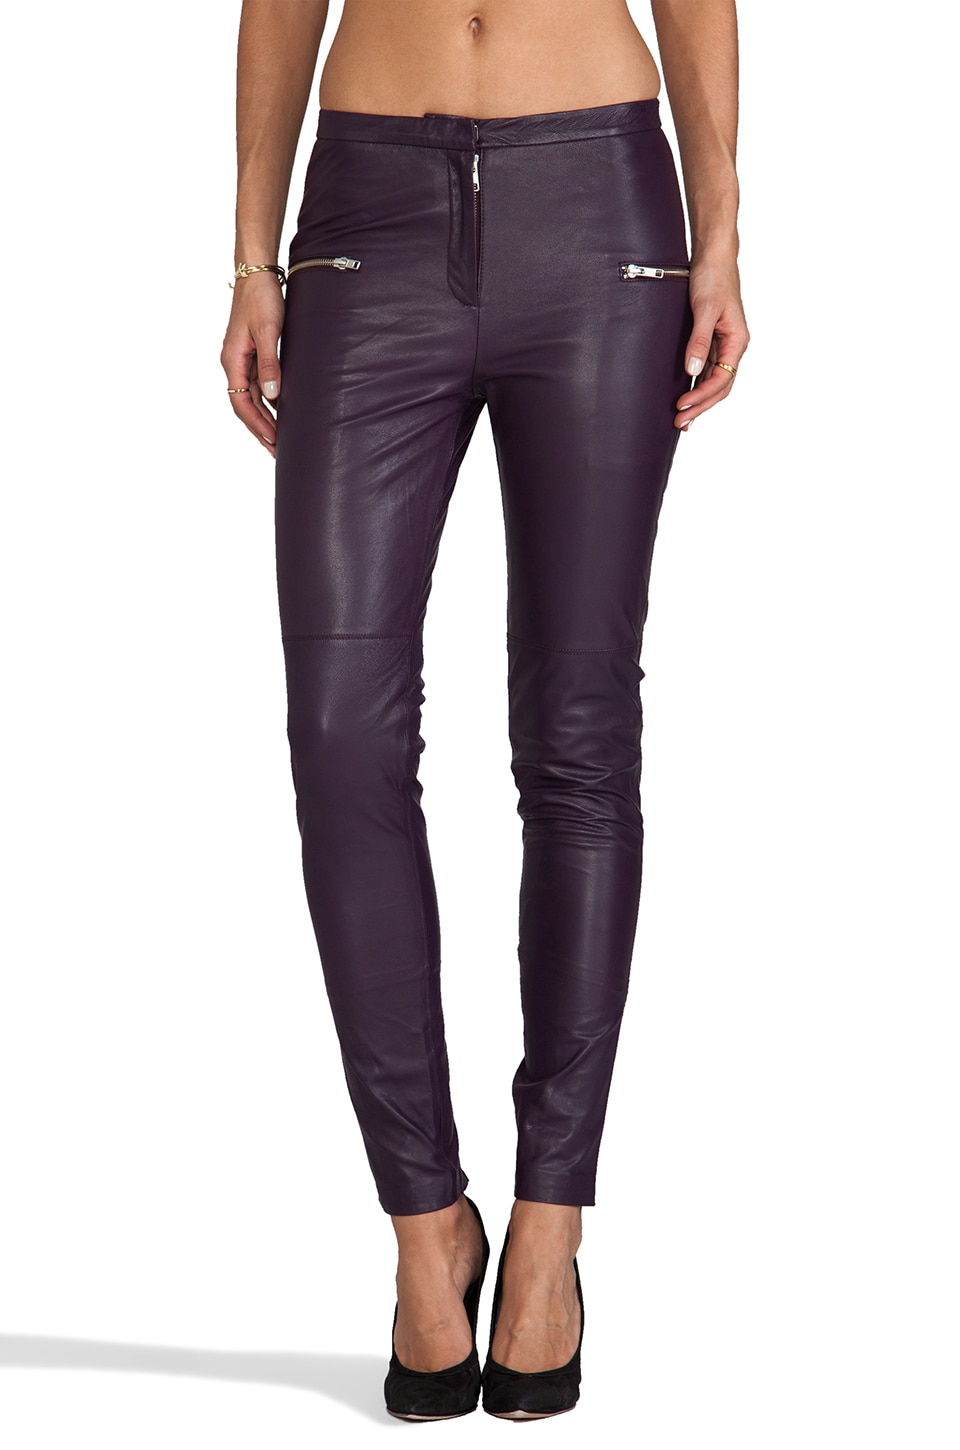 By Malene Birger Luxurious Leather Bongani Pant in Italian Plum